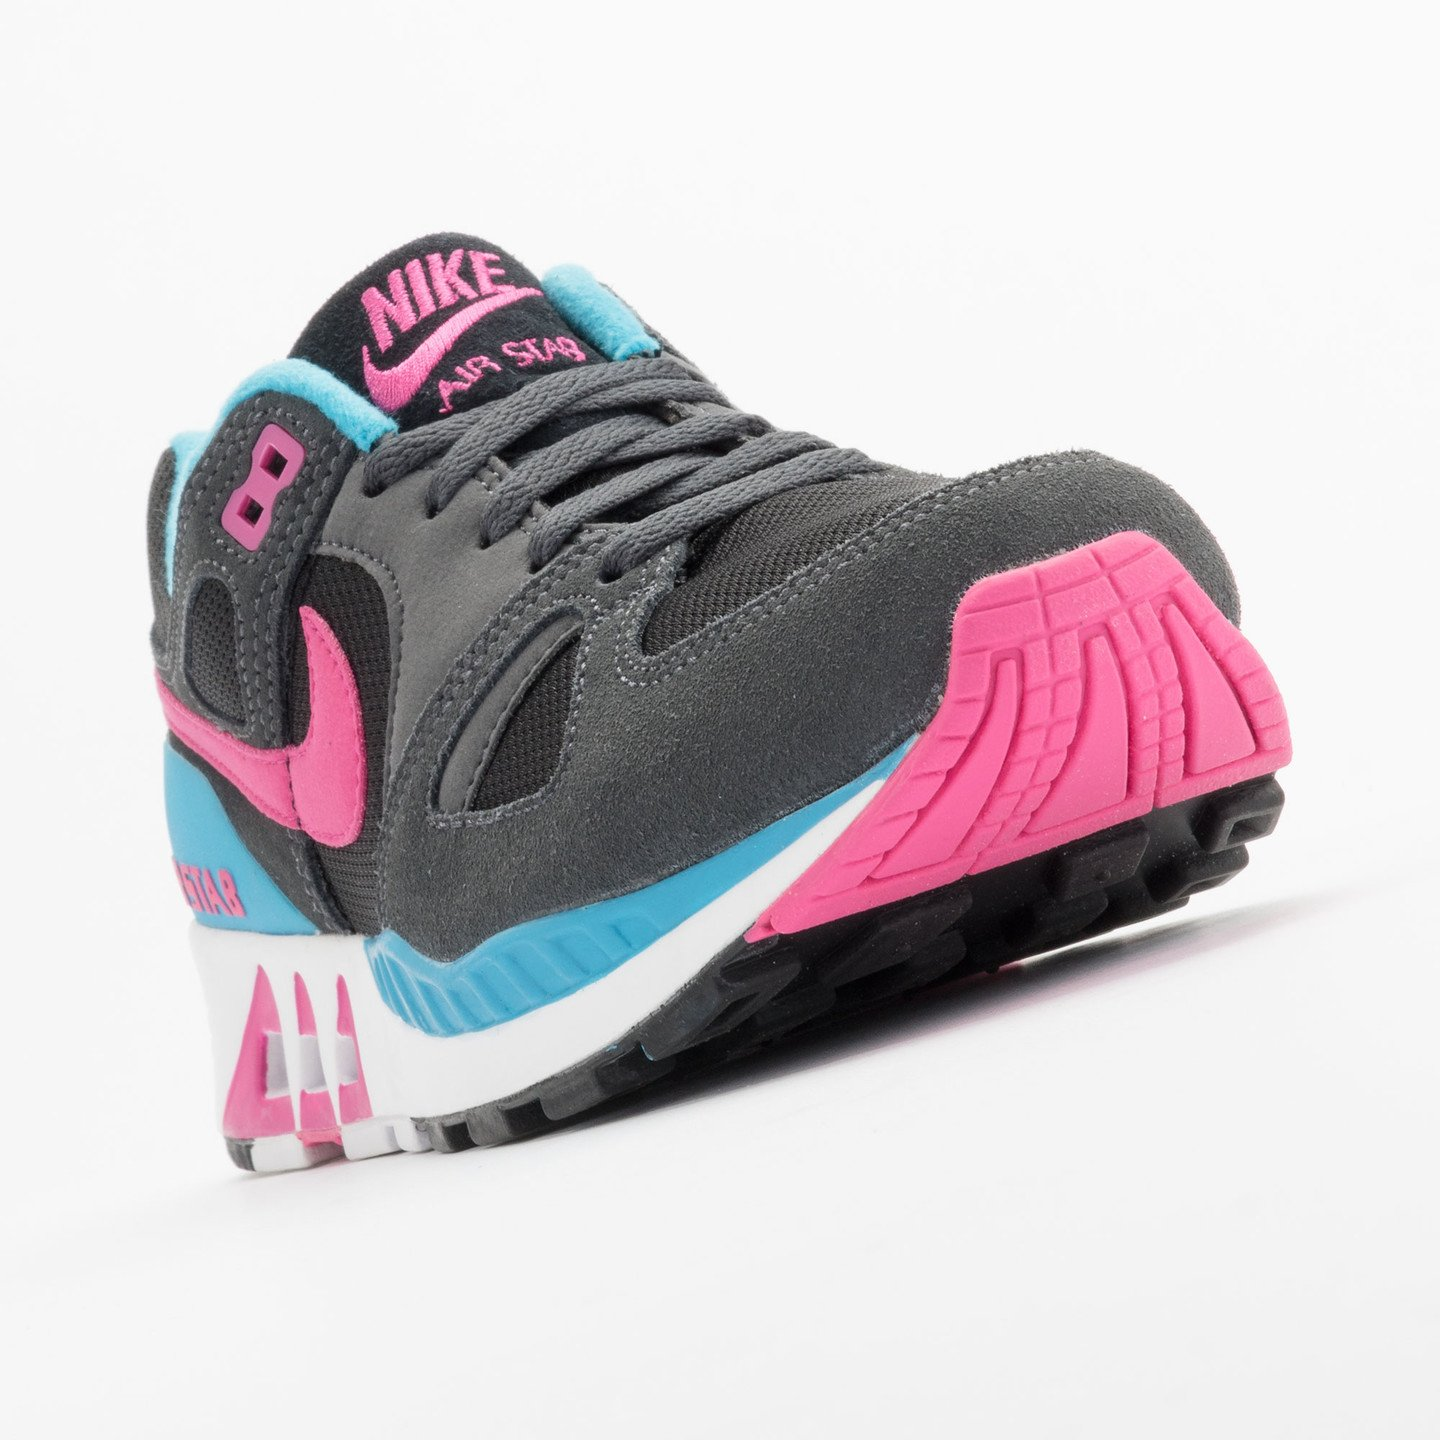 Nike Air Stab Black/Hot Pink-Anthrct-Bl Lgn 312451-004-45.5